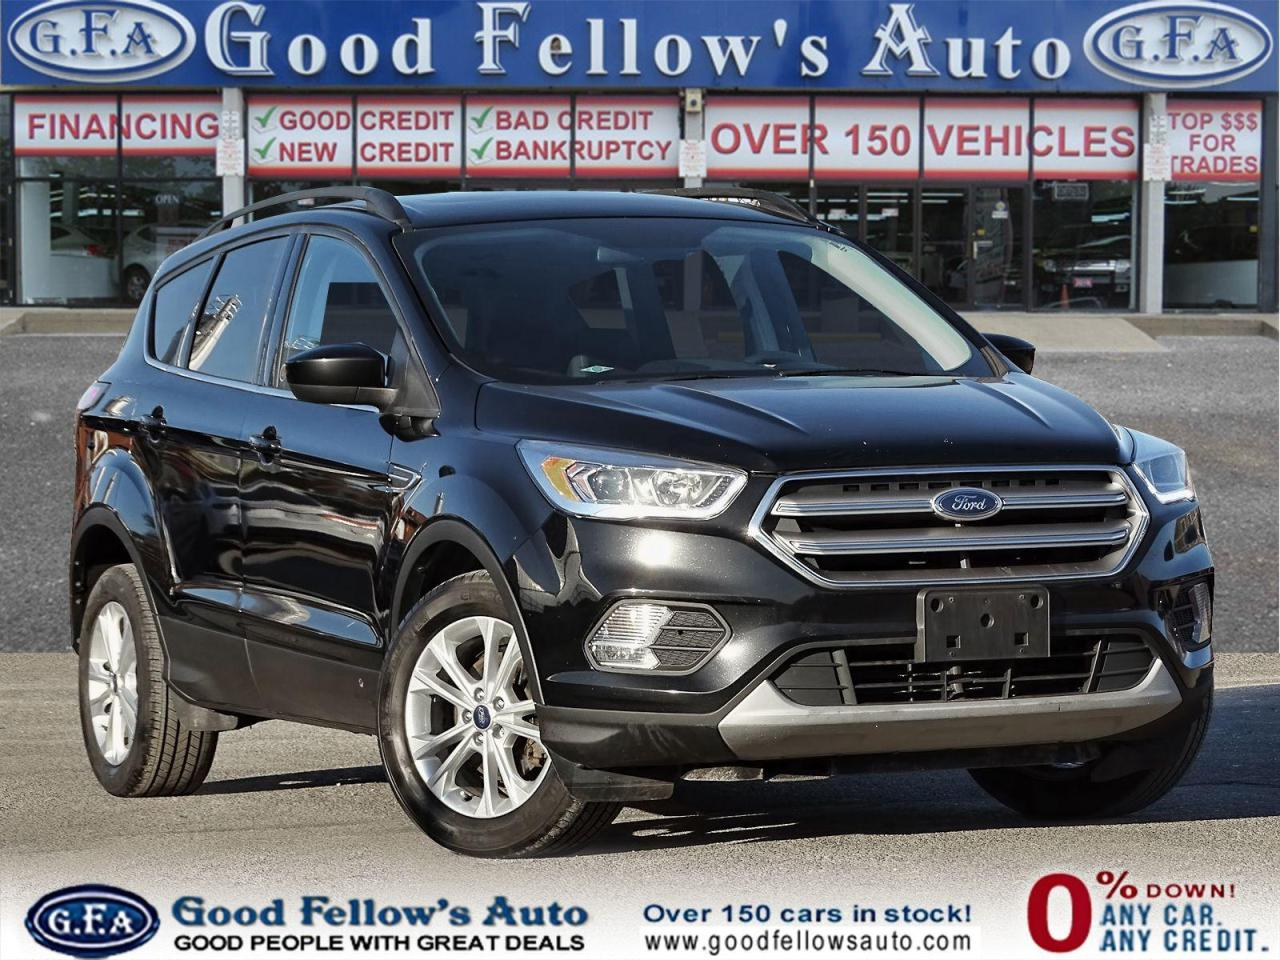 used 2017 Ford Escape car, priced at $15,900